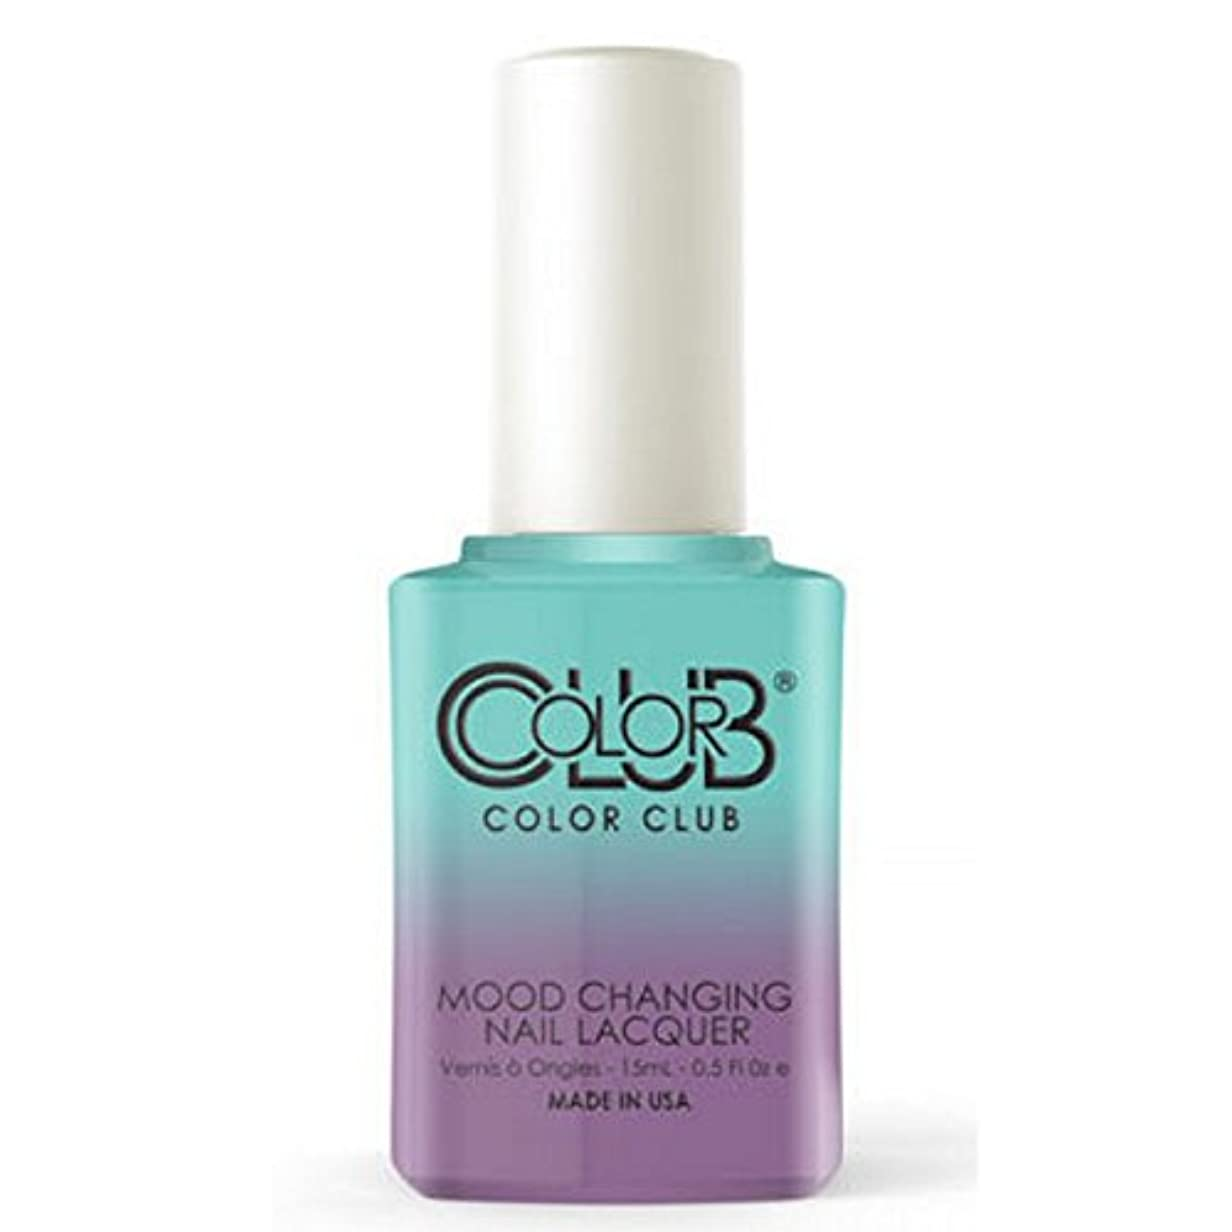 ありふれた透明に救いColor Club Mood Changing Nail Lacquer - Serene Green - 15 mL / 0.5 fl oz